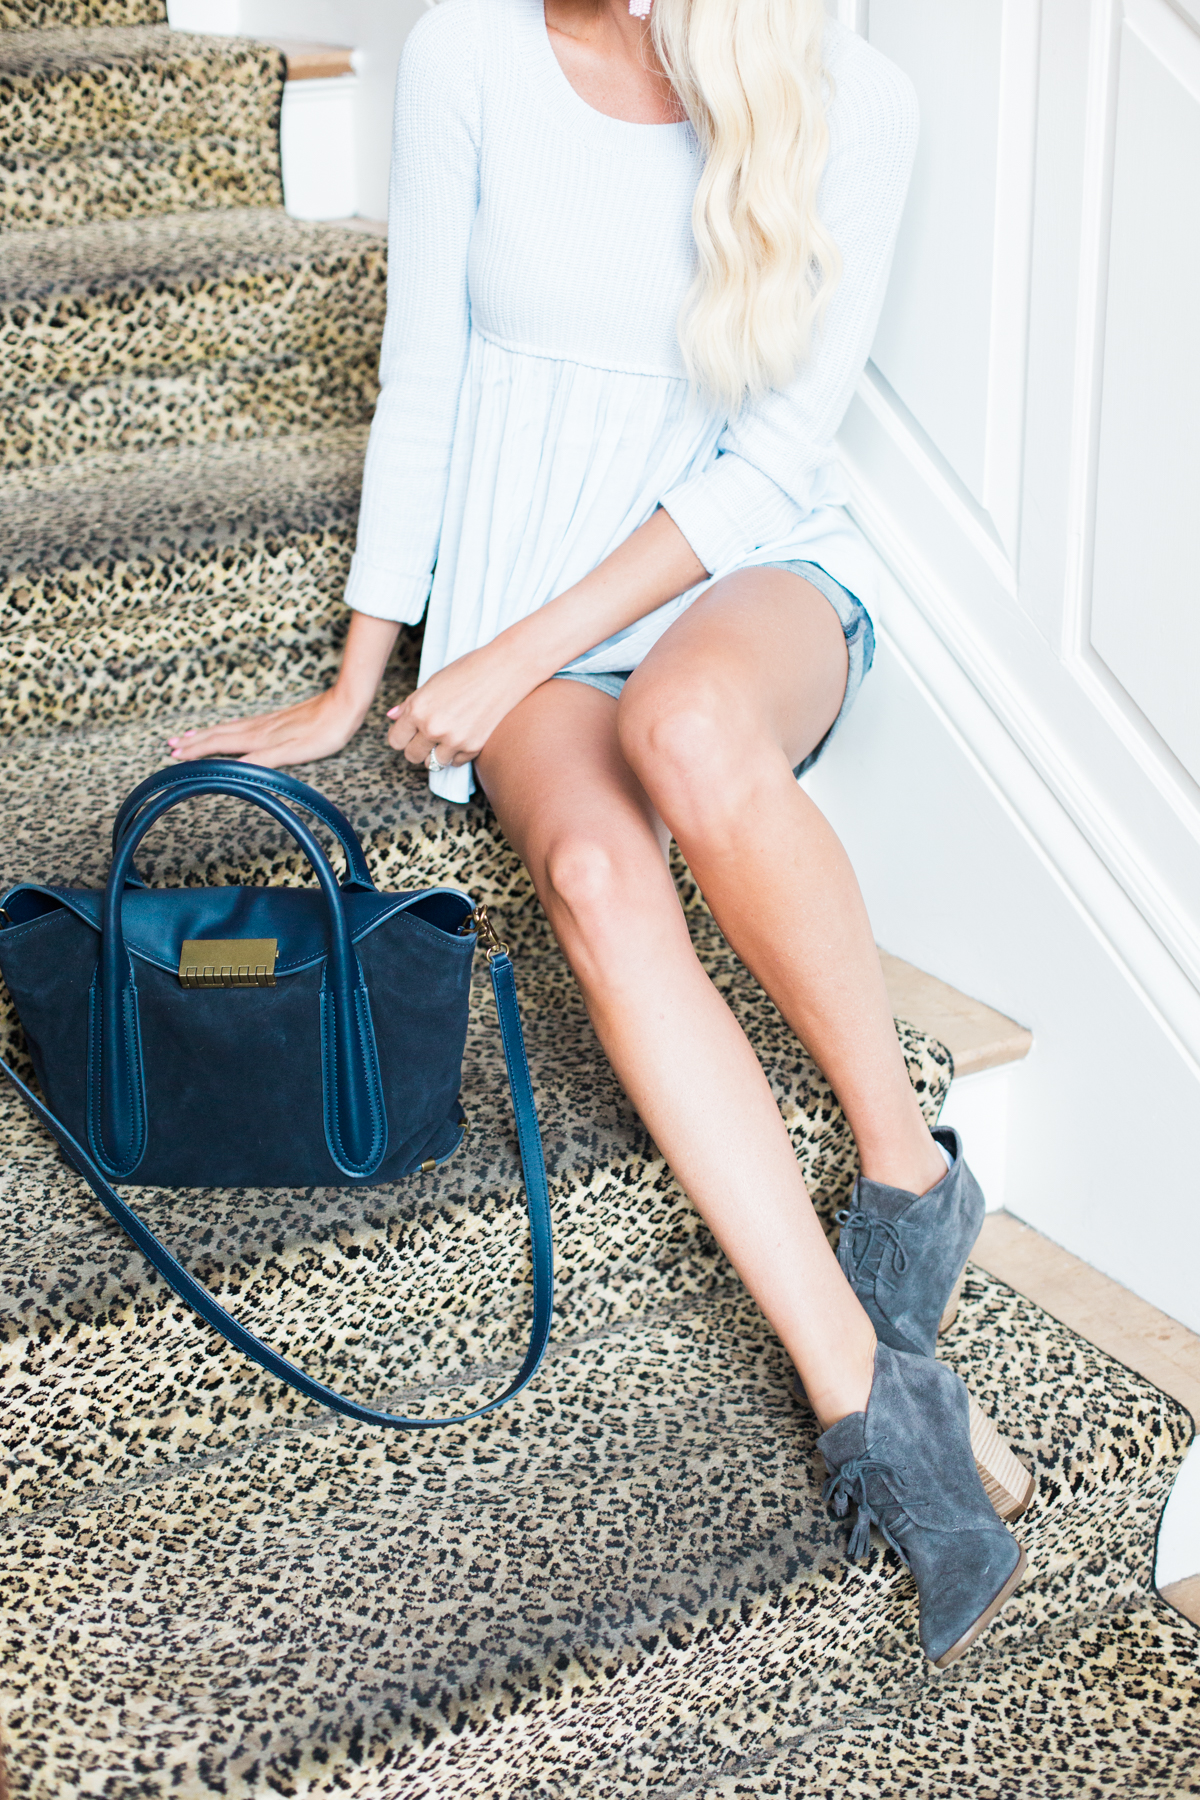 McKenna_Bleu_Fashion_Style_Fall_Travel_Blog_Savannah_Georgia_photo-2392